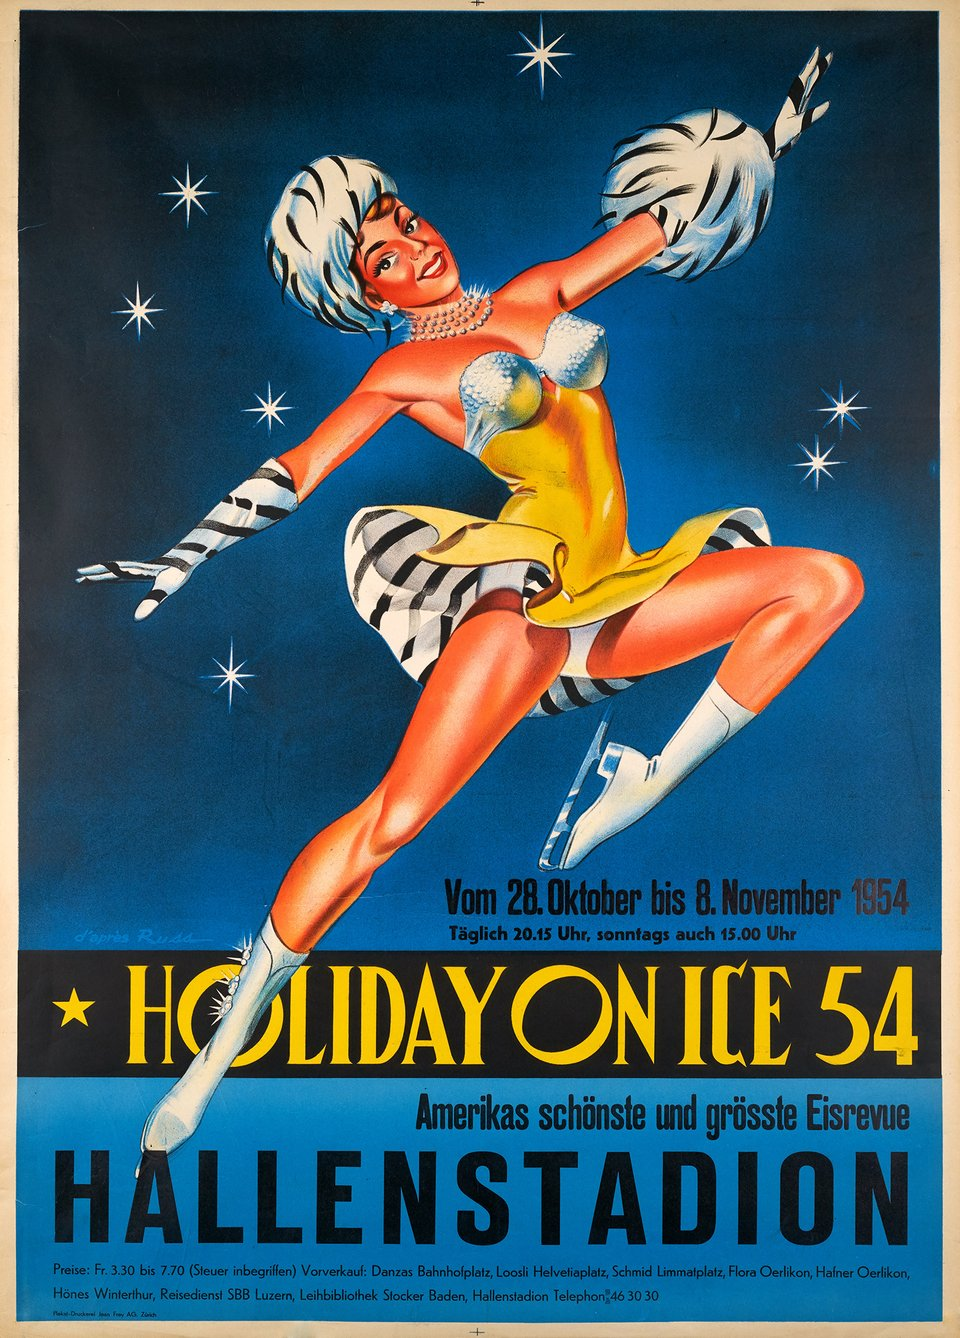 Holiday on ice 54, Zürich – Affiche ancienne –  RUSS – 1954